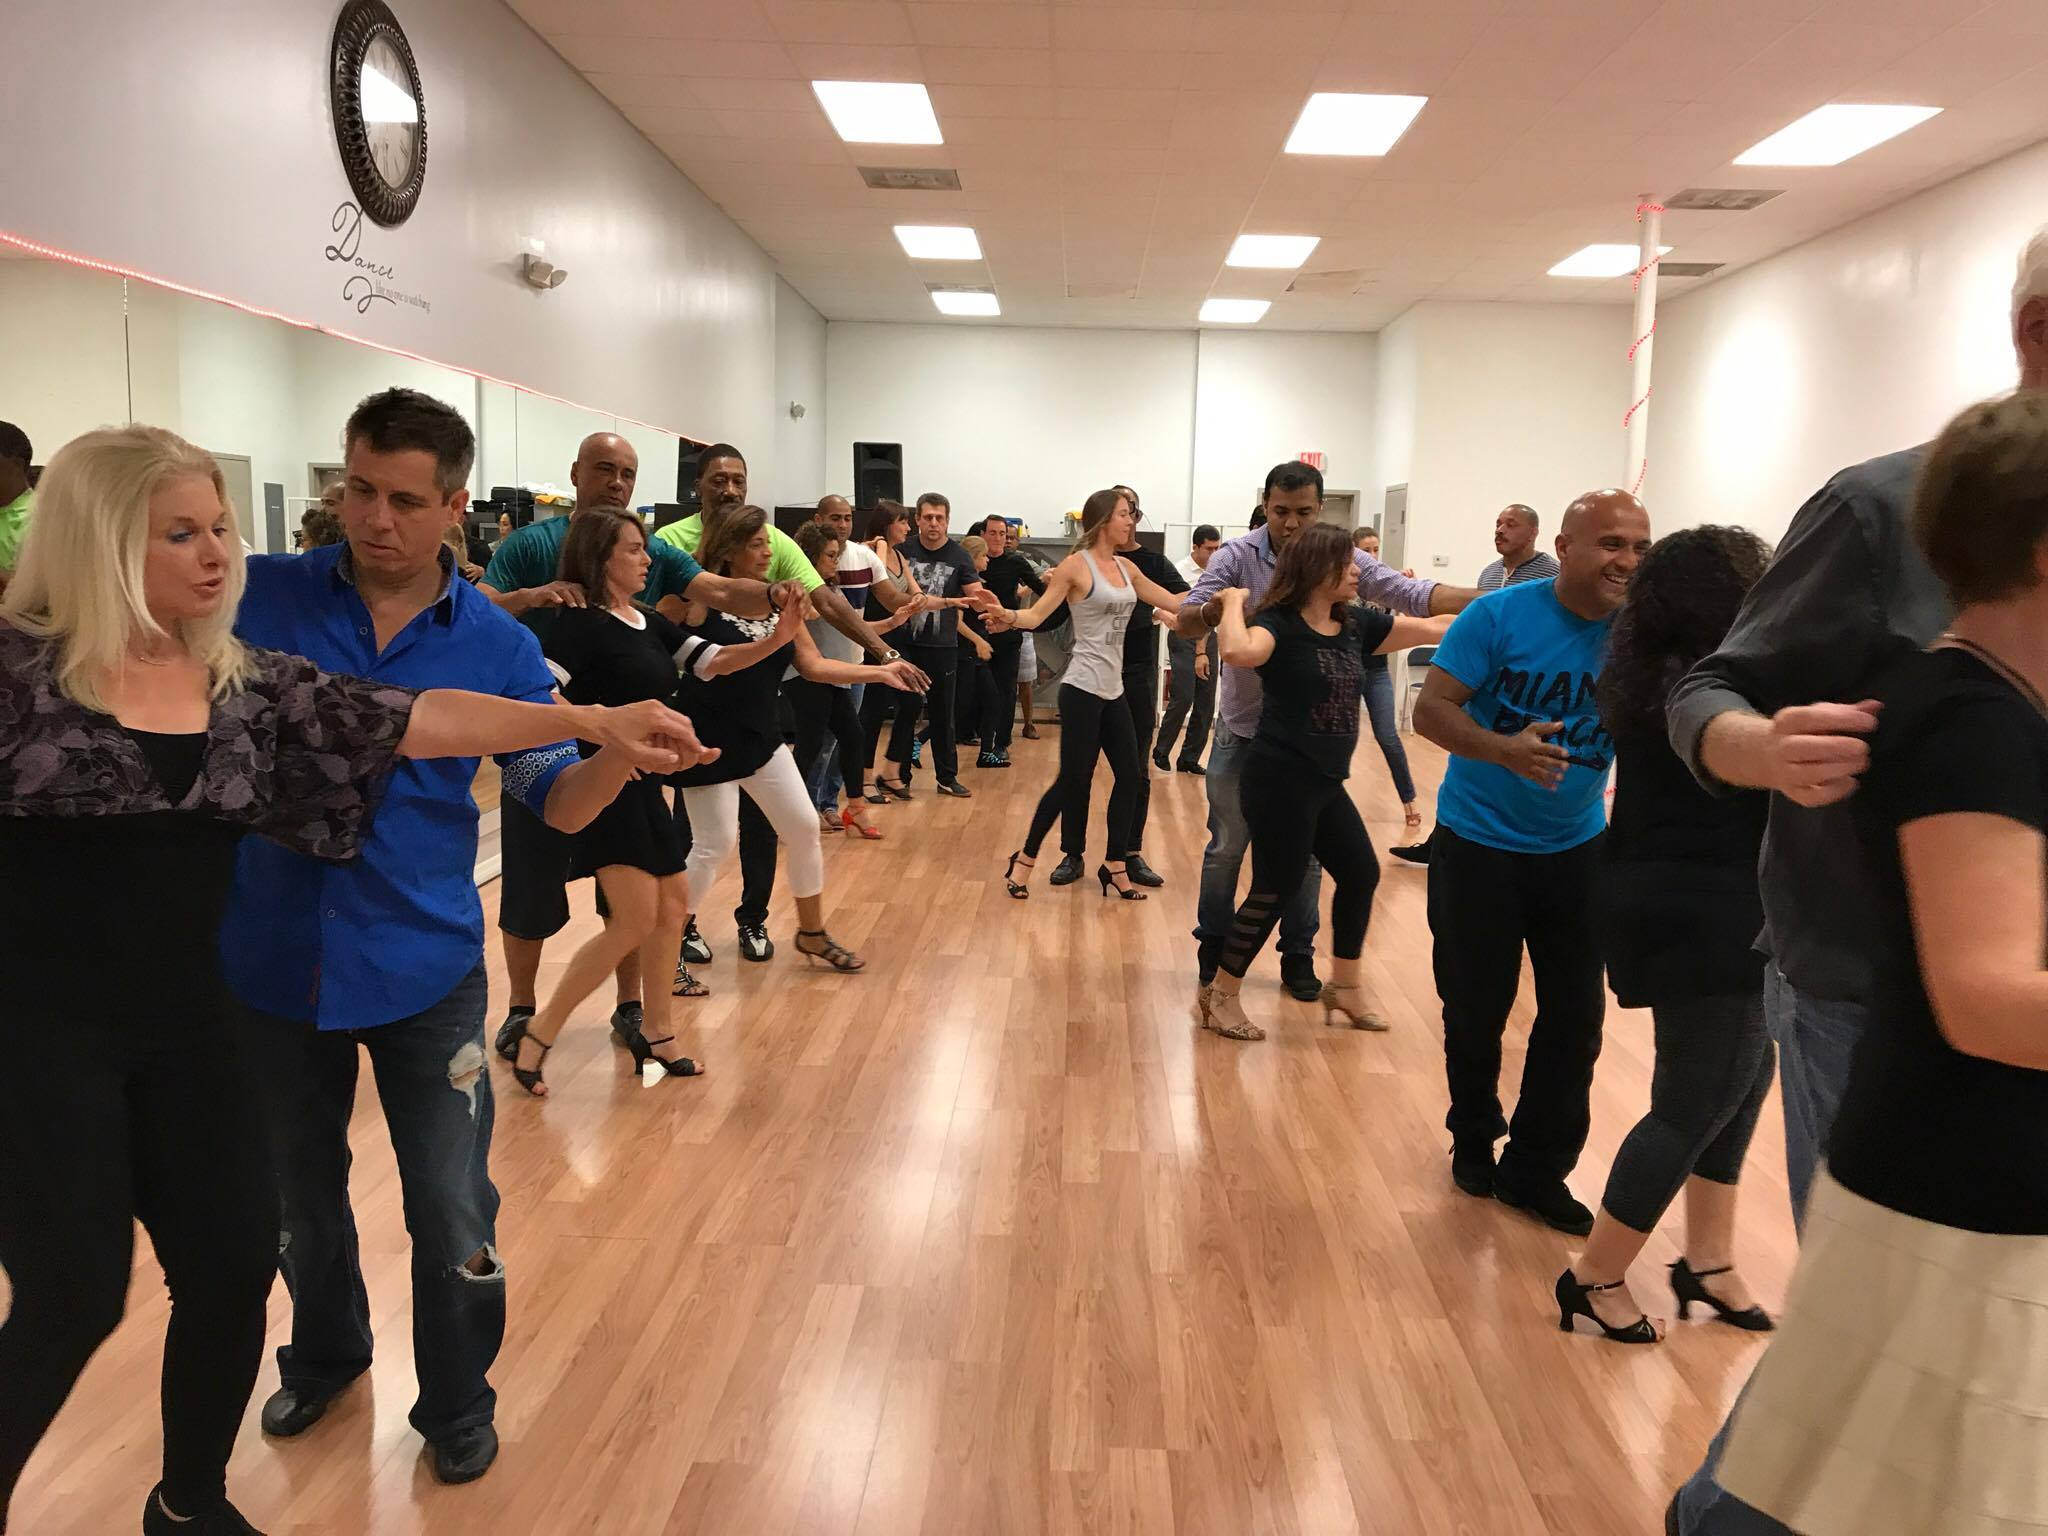 Experts in Latin Rhythm & Dance - Mambo Factory Salsa & Bachata Classes